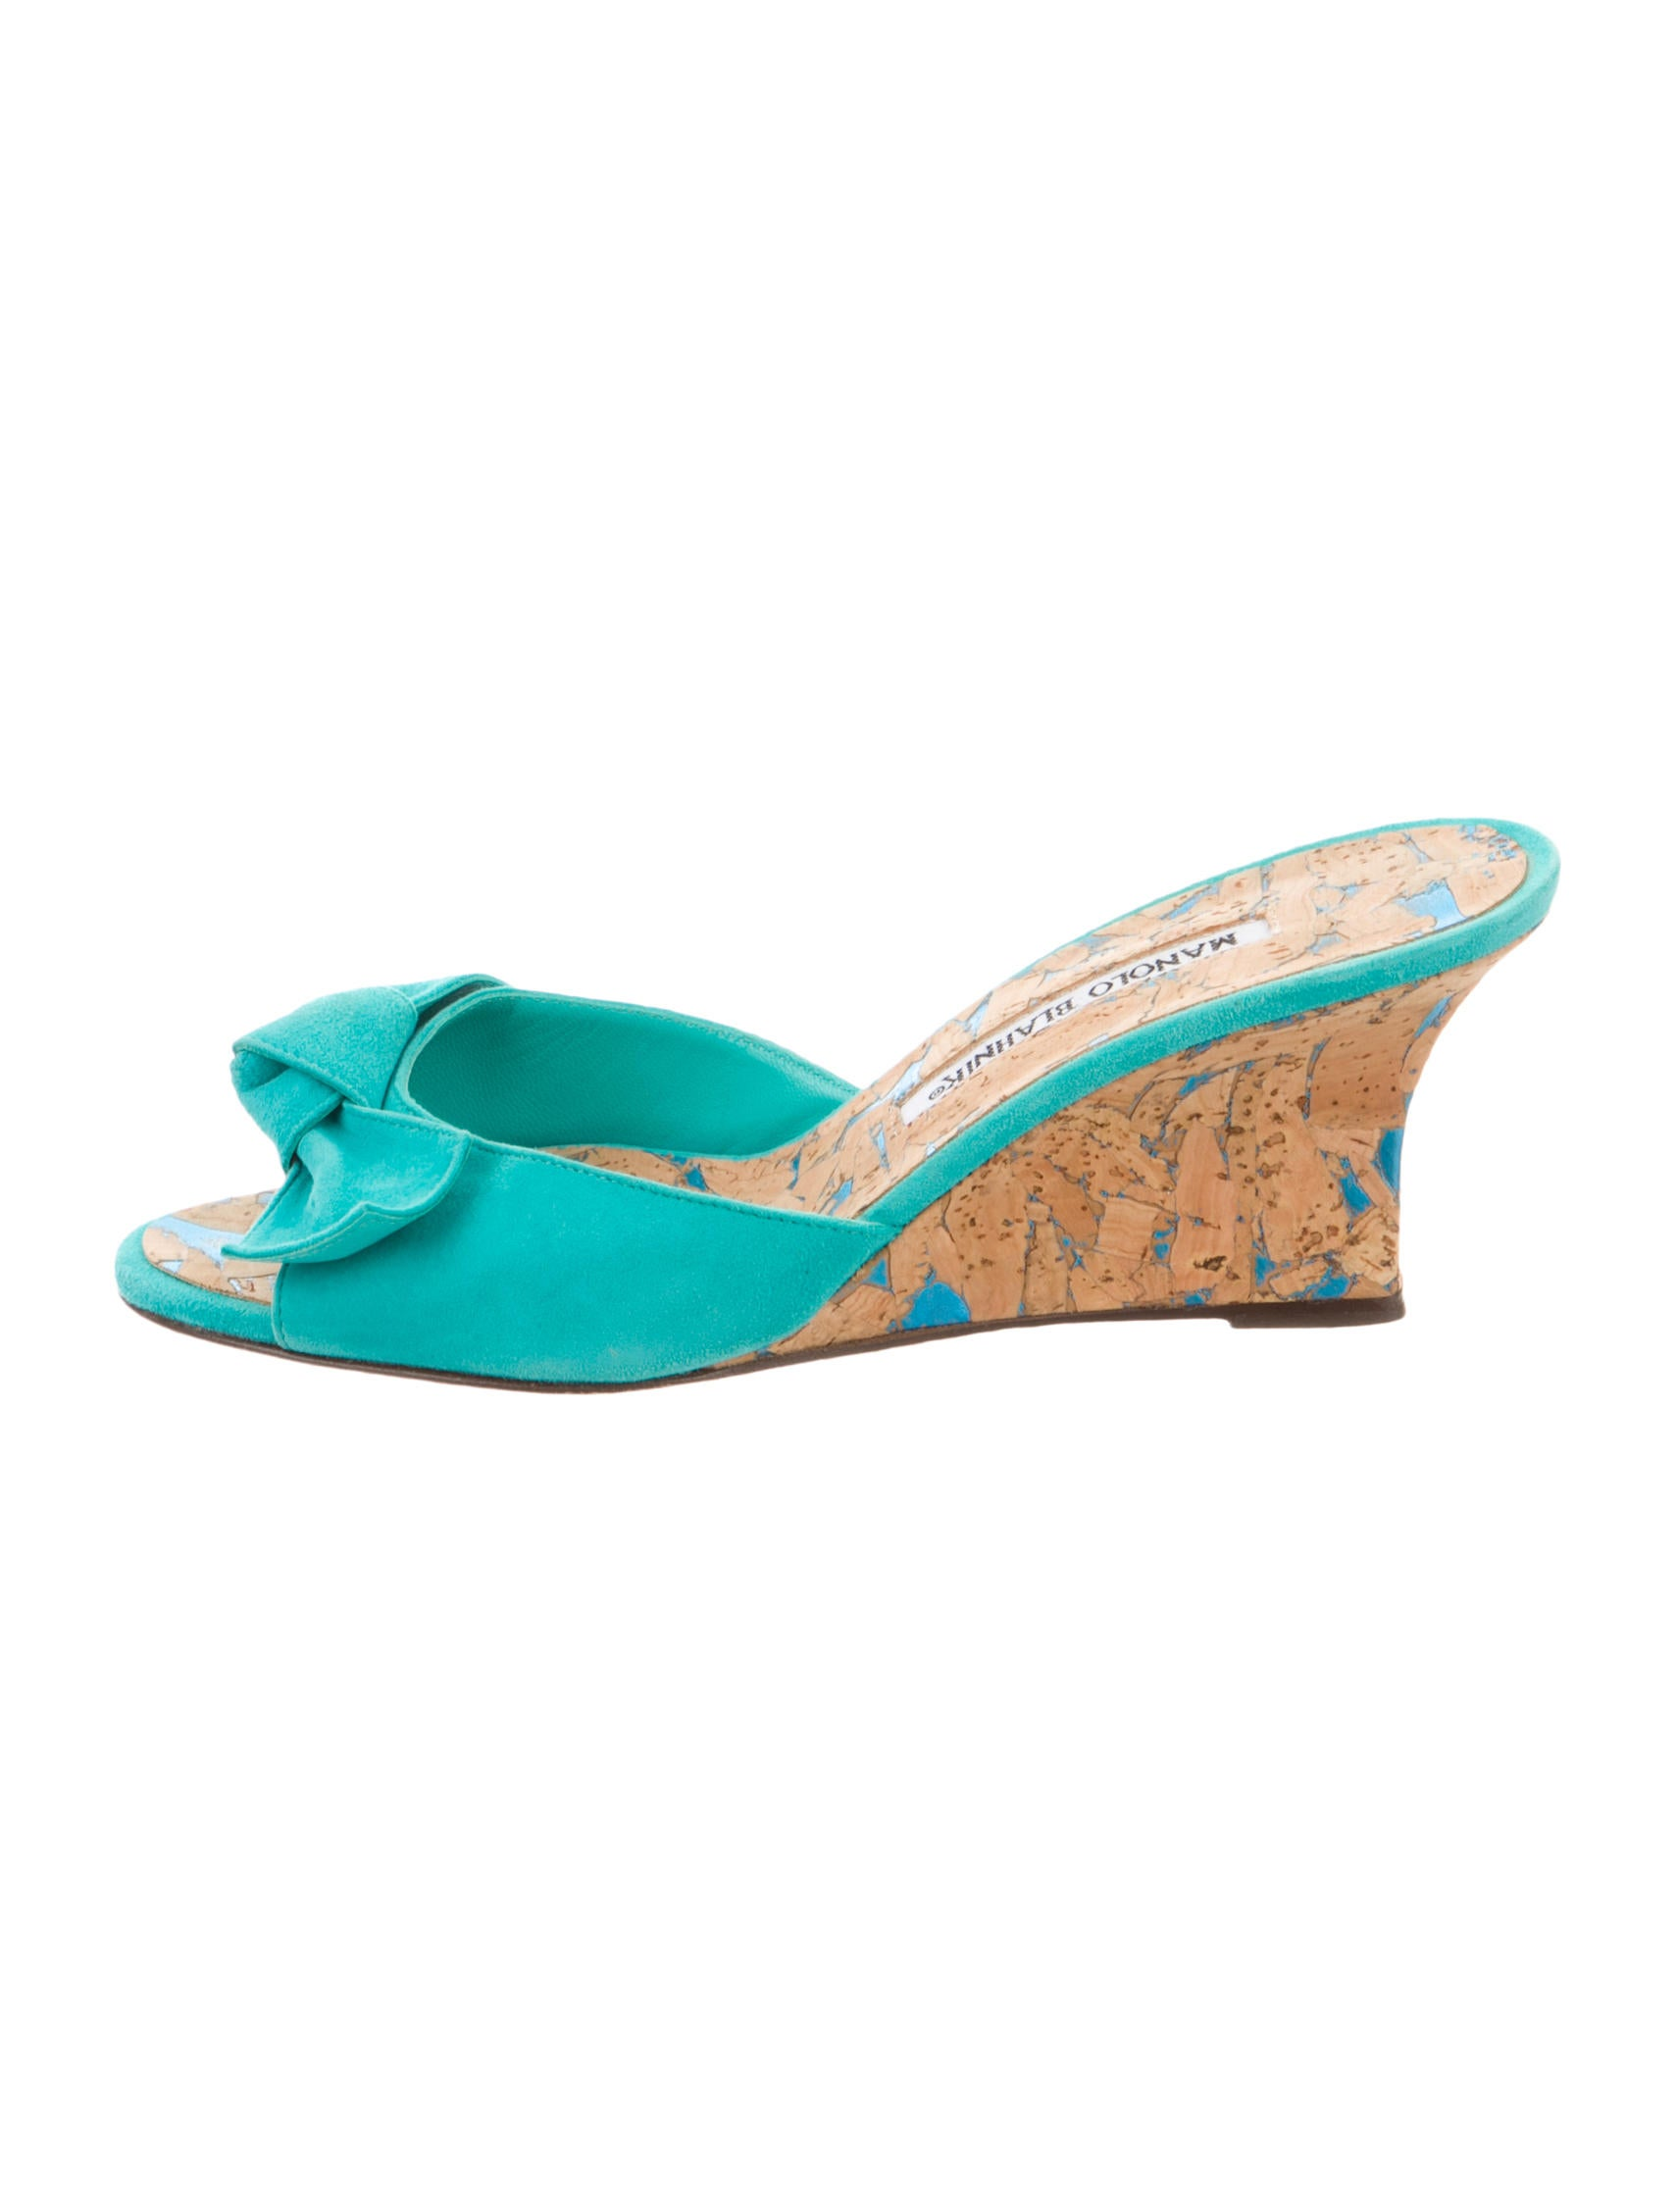 Manolo Blahnik Bow-Accented Slide Sandals for sale wholesale price N1I3bvKJ